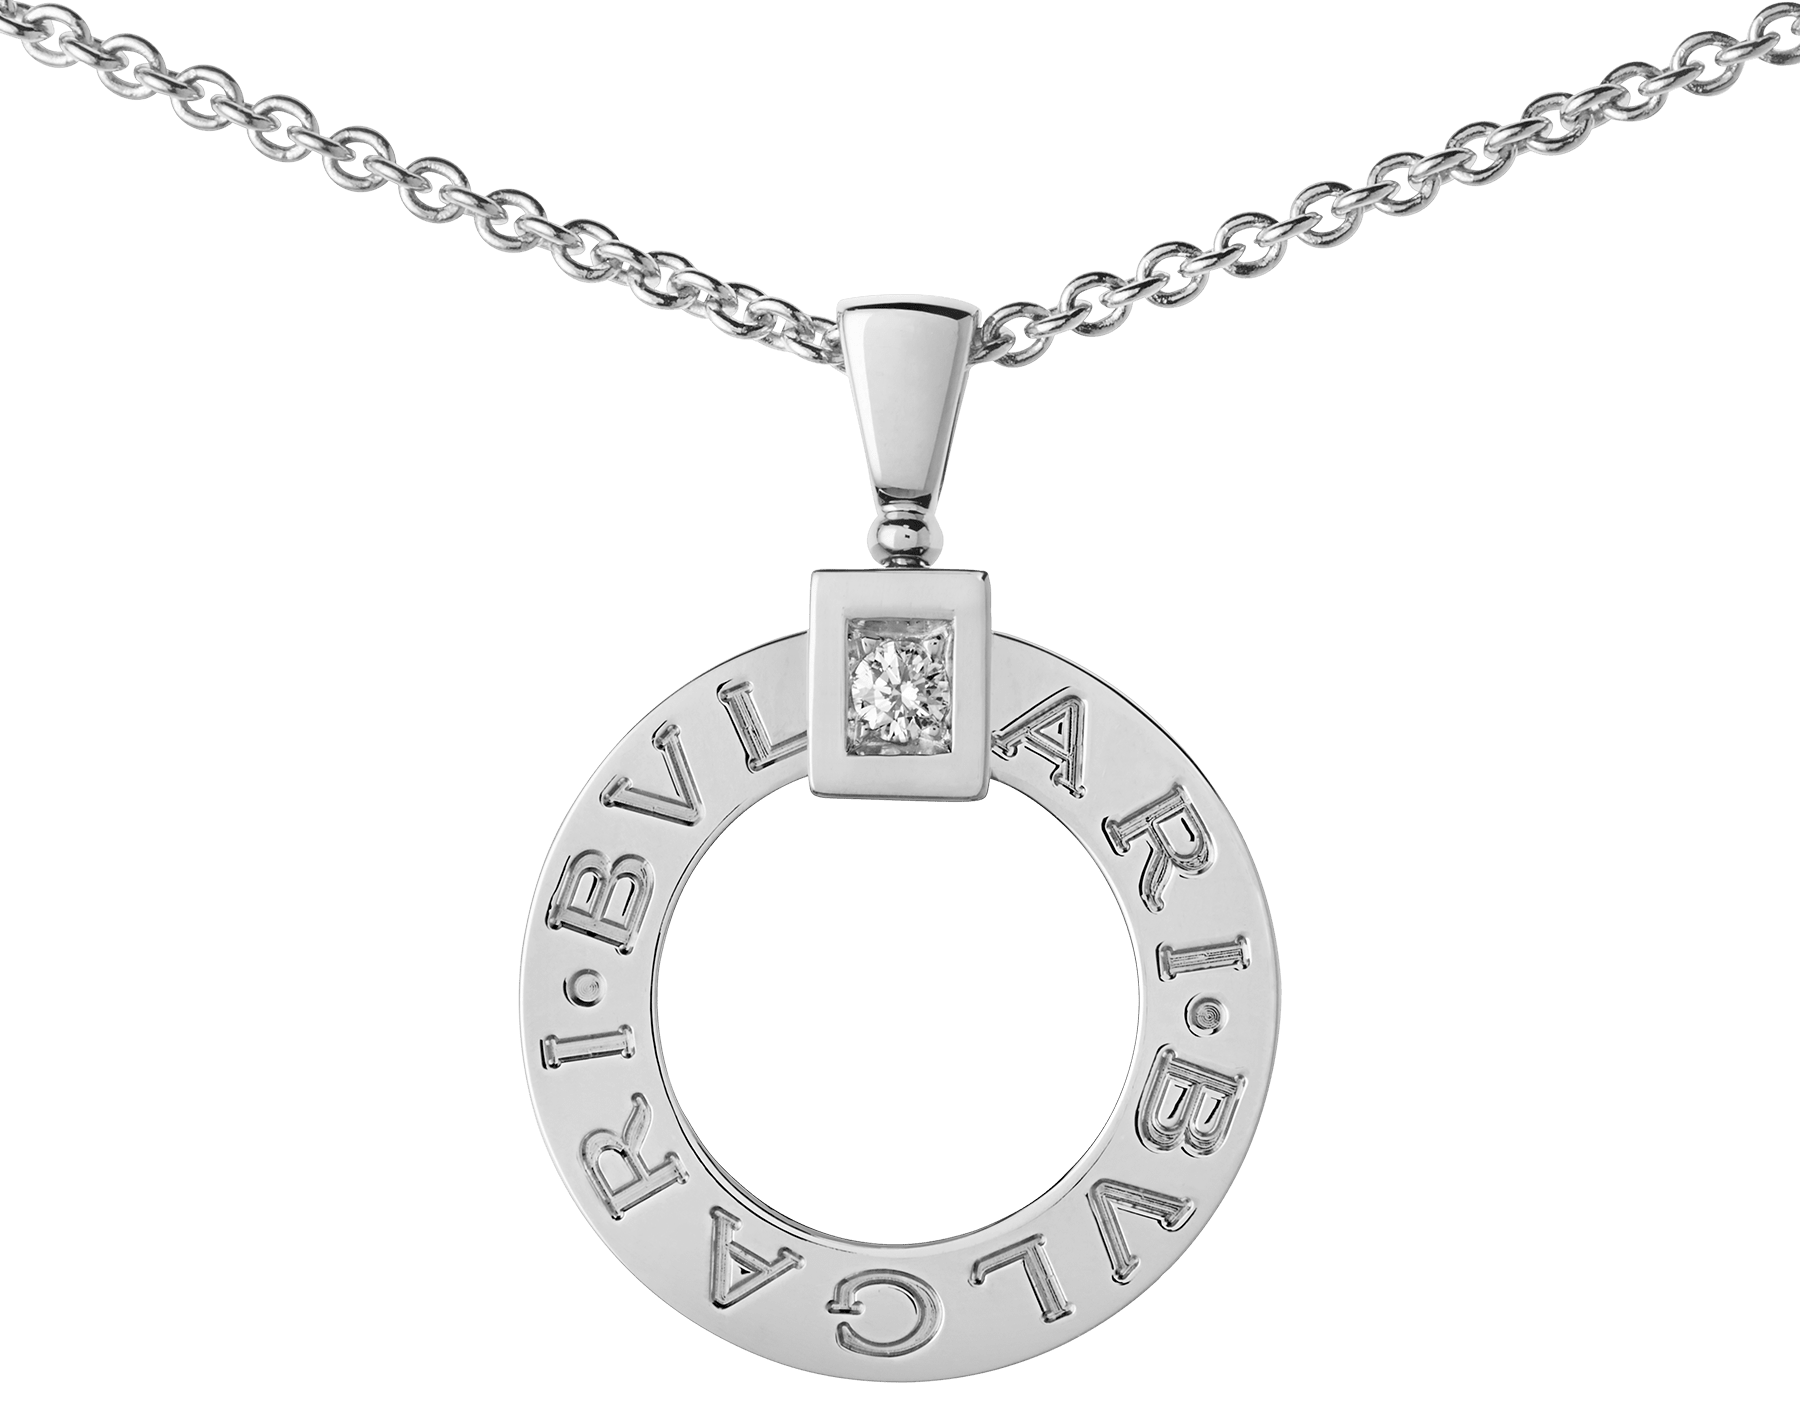 BVLGARI BVLGARI necklace with 18 kt white gold chain and 18 kt white gold pendant set with a diamond 342074 image 3